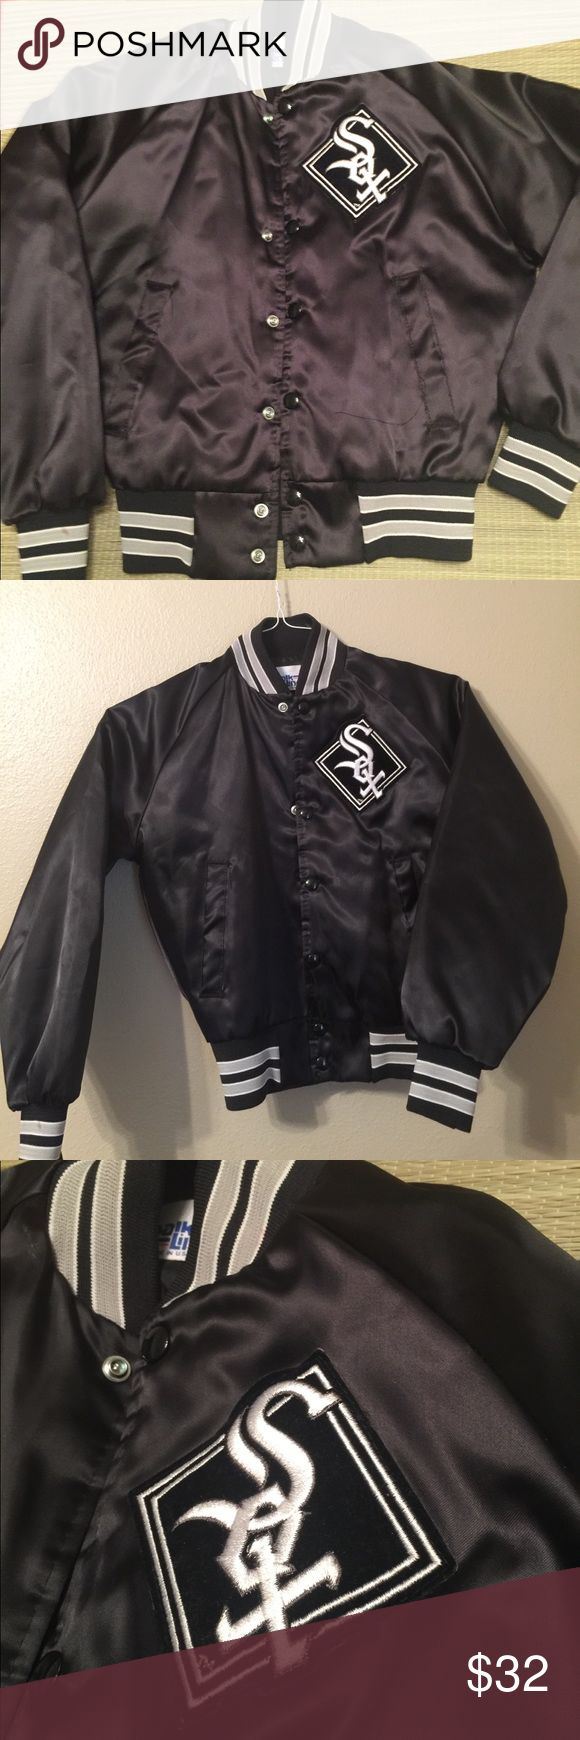 Vtg SOX MLB satin bomber jacket youth M fits XS/S Vintage 90s Chicago SOX MLB puffy satin bomber jacket. Great condition looks new! Worn 1x. satin (sorta shiny) a ill puffy. Tag size youth medium I REPEAT a youth sz but fits women's XS-S. I am a small 5'6 fits me great there is some stretch. Sleeves r a tad short for me but look fine when I pull them up to forearms. Slightly cropped comes just up to waist of jeans. Black and Gray silver white Chicago white SOX MLB vintage jacket. Similar to…